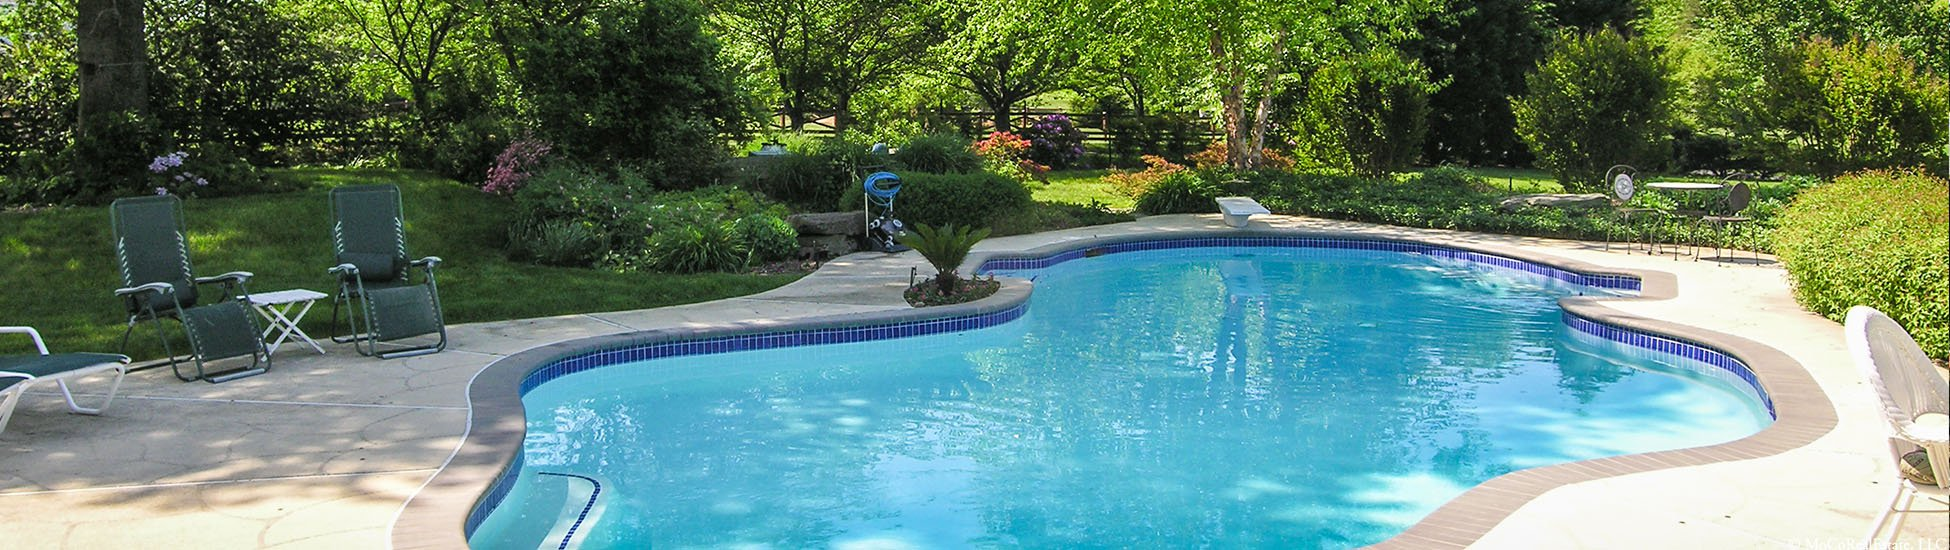 Homes For Sale With Pools Montgomery County